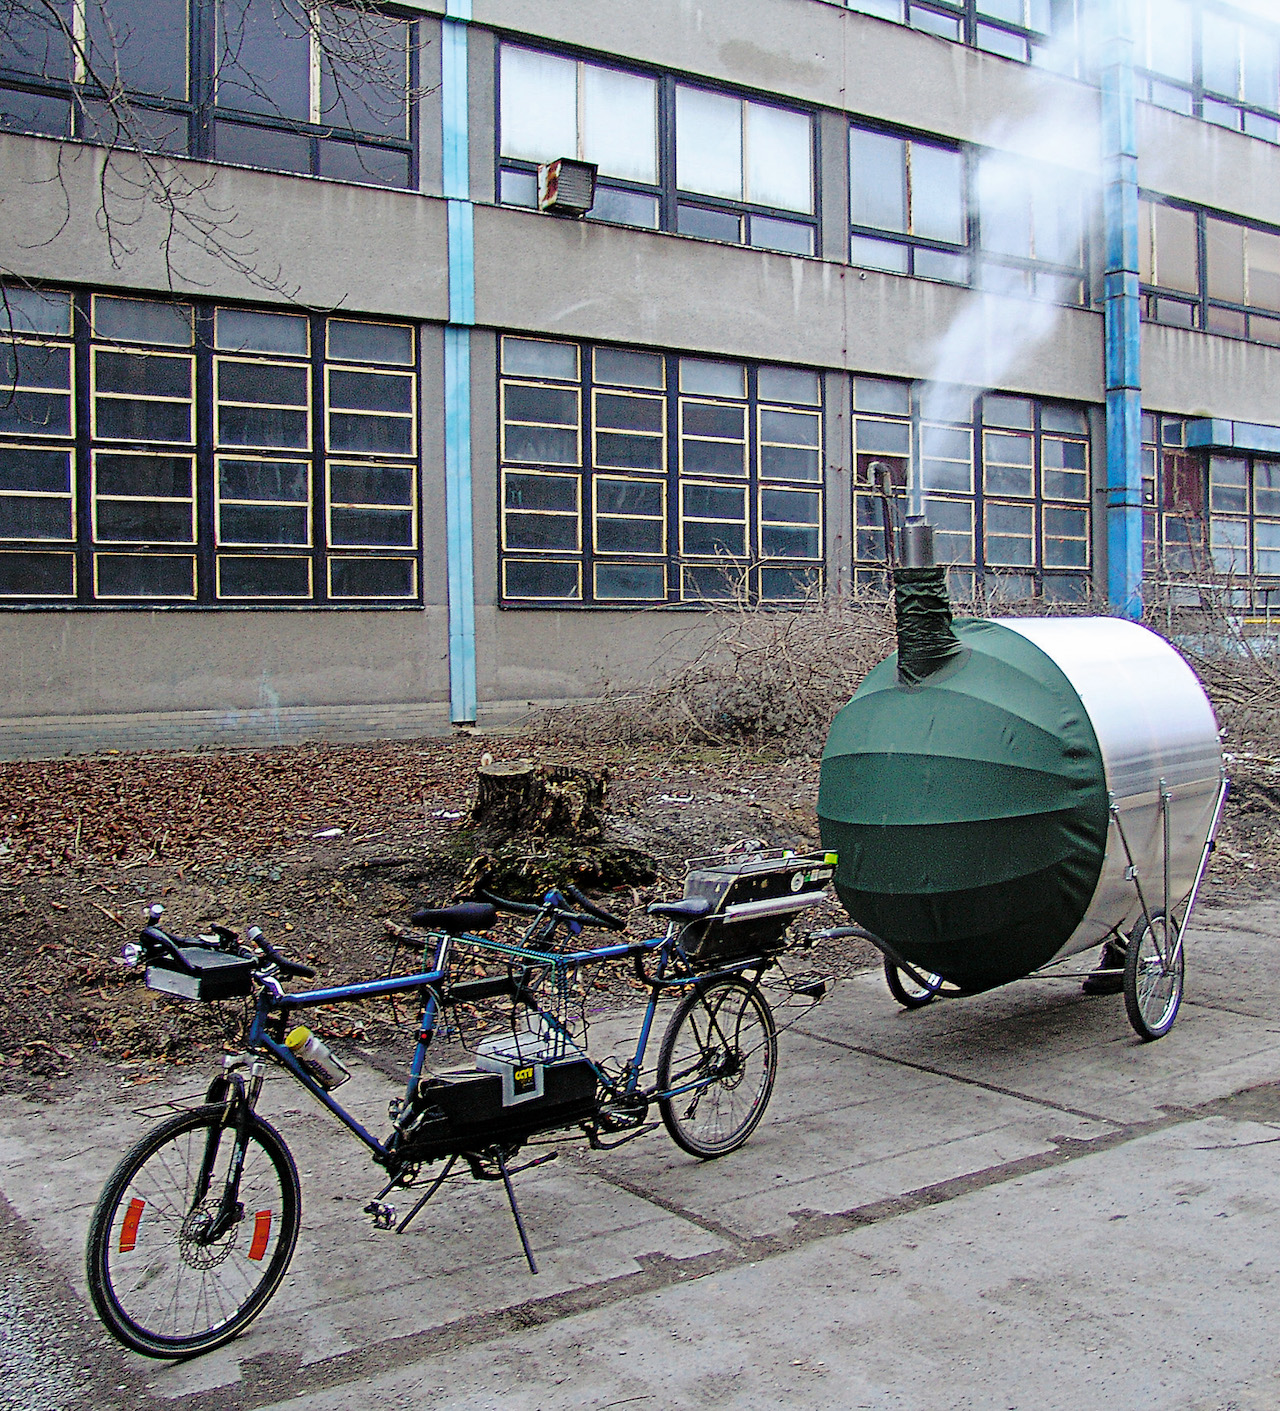 """H3T Architects, """"Bicycle Sauna"""" (2011) in the Czech Republic (or elsewhere) (photo by H3T Architekti)"""